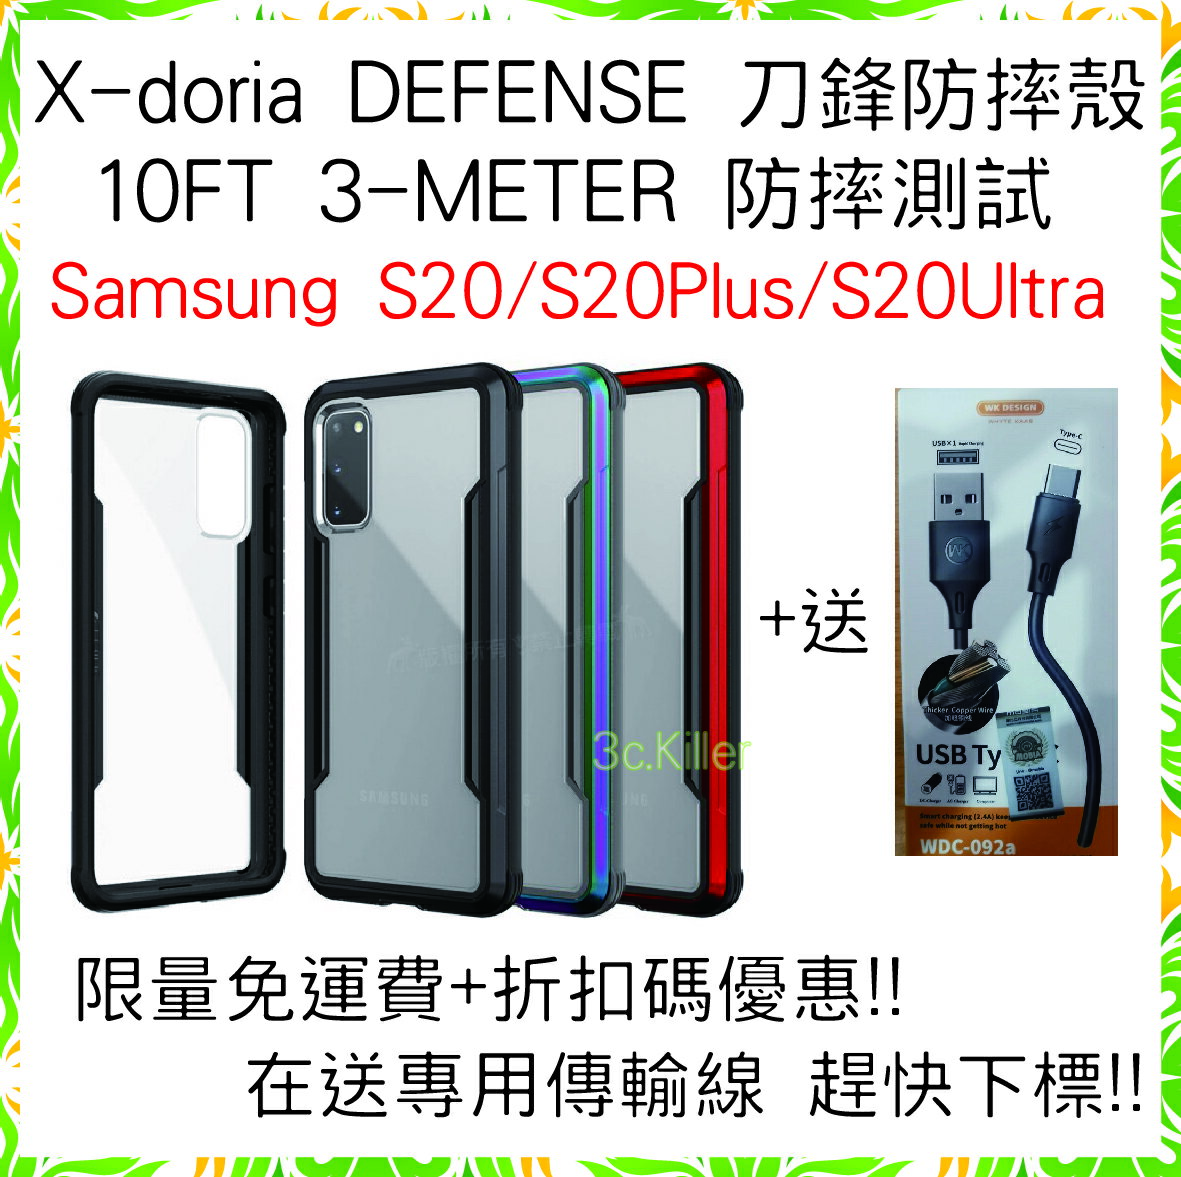 S20/S20Plus/S20Ultra  Note10/10+ 刀鋒極盾系列 3米防摔 DEFENSE  三星 S20U